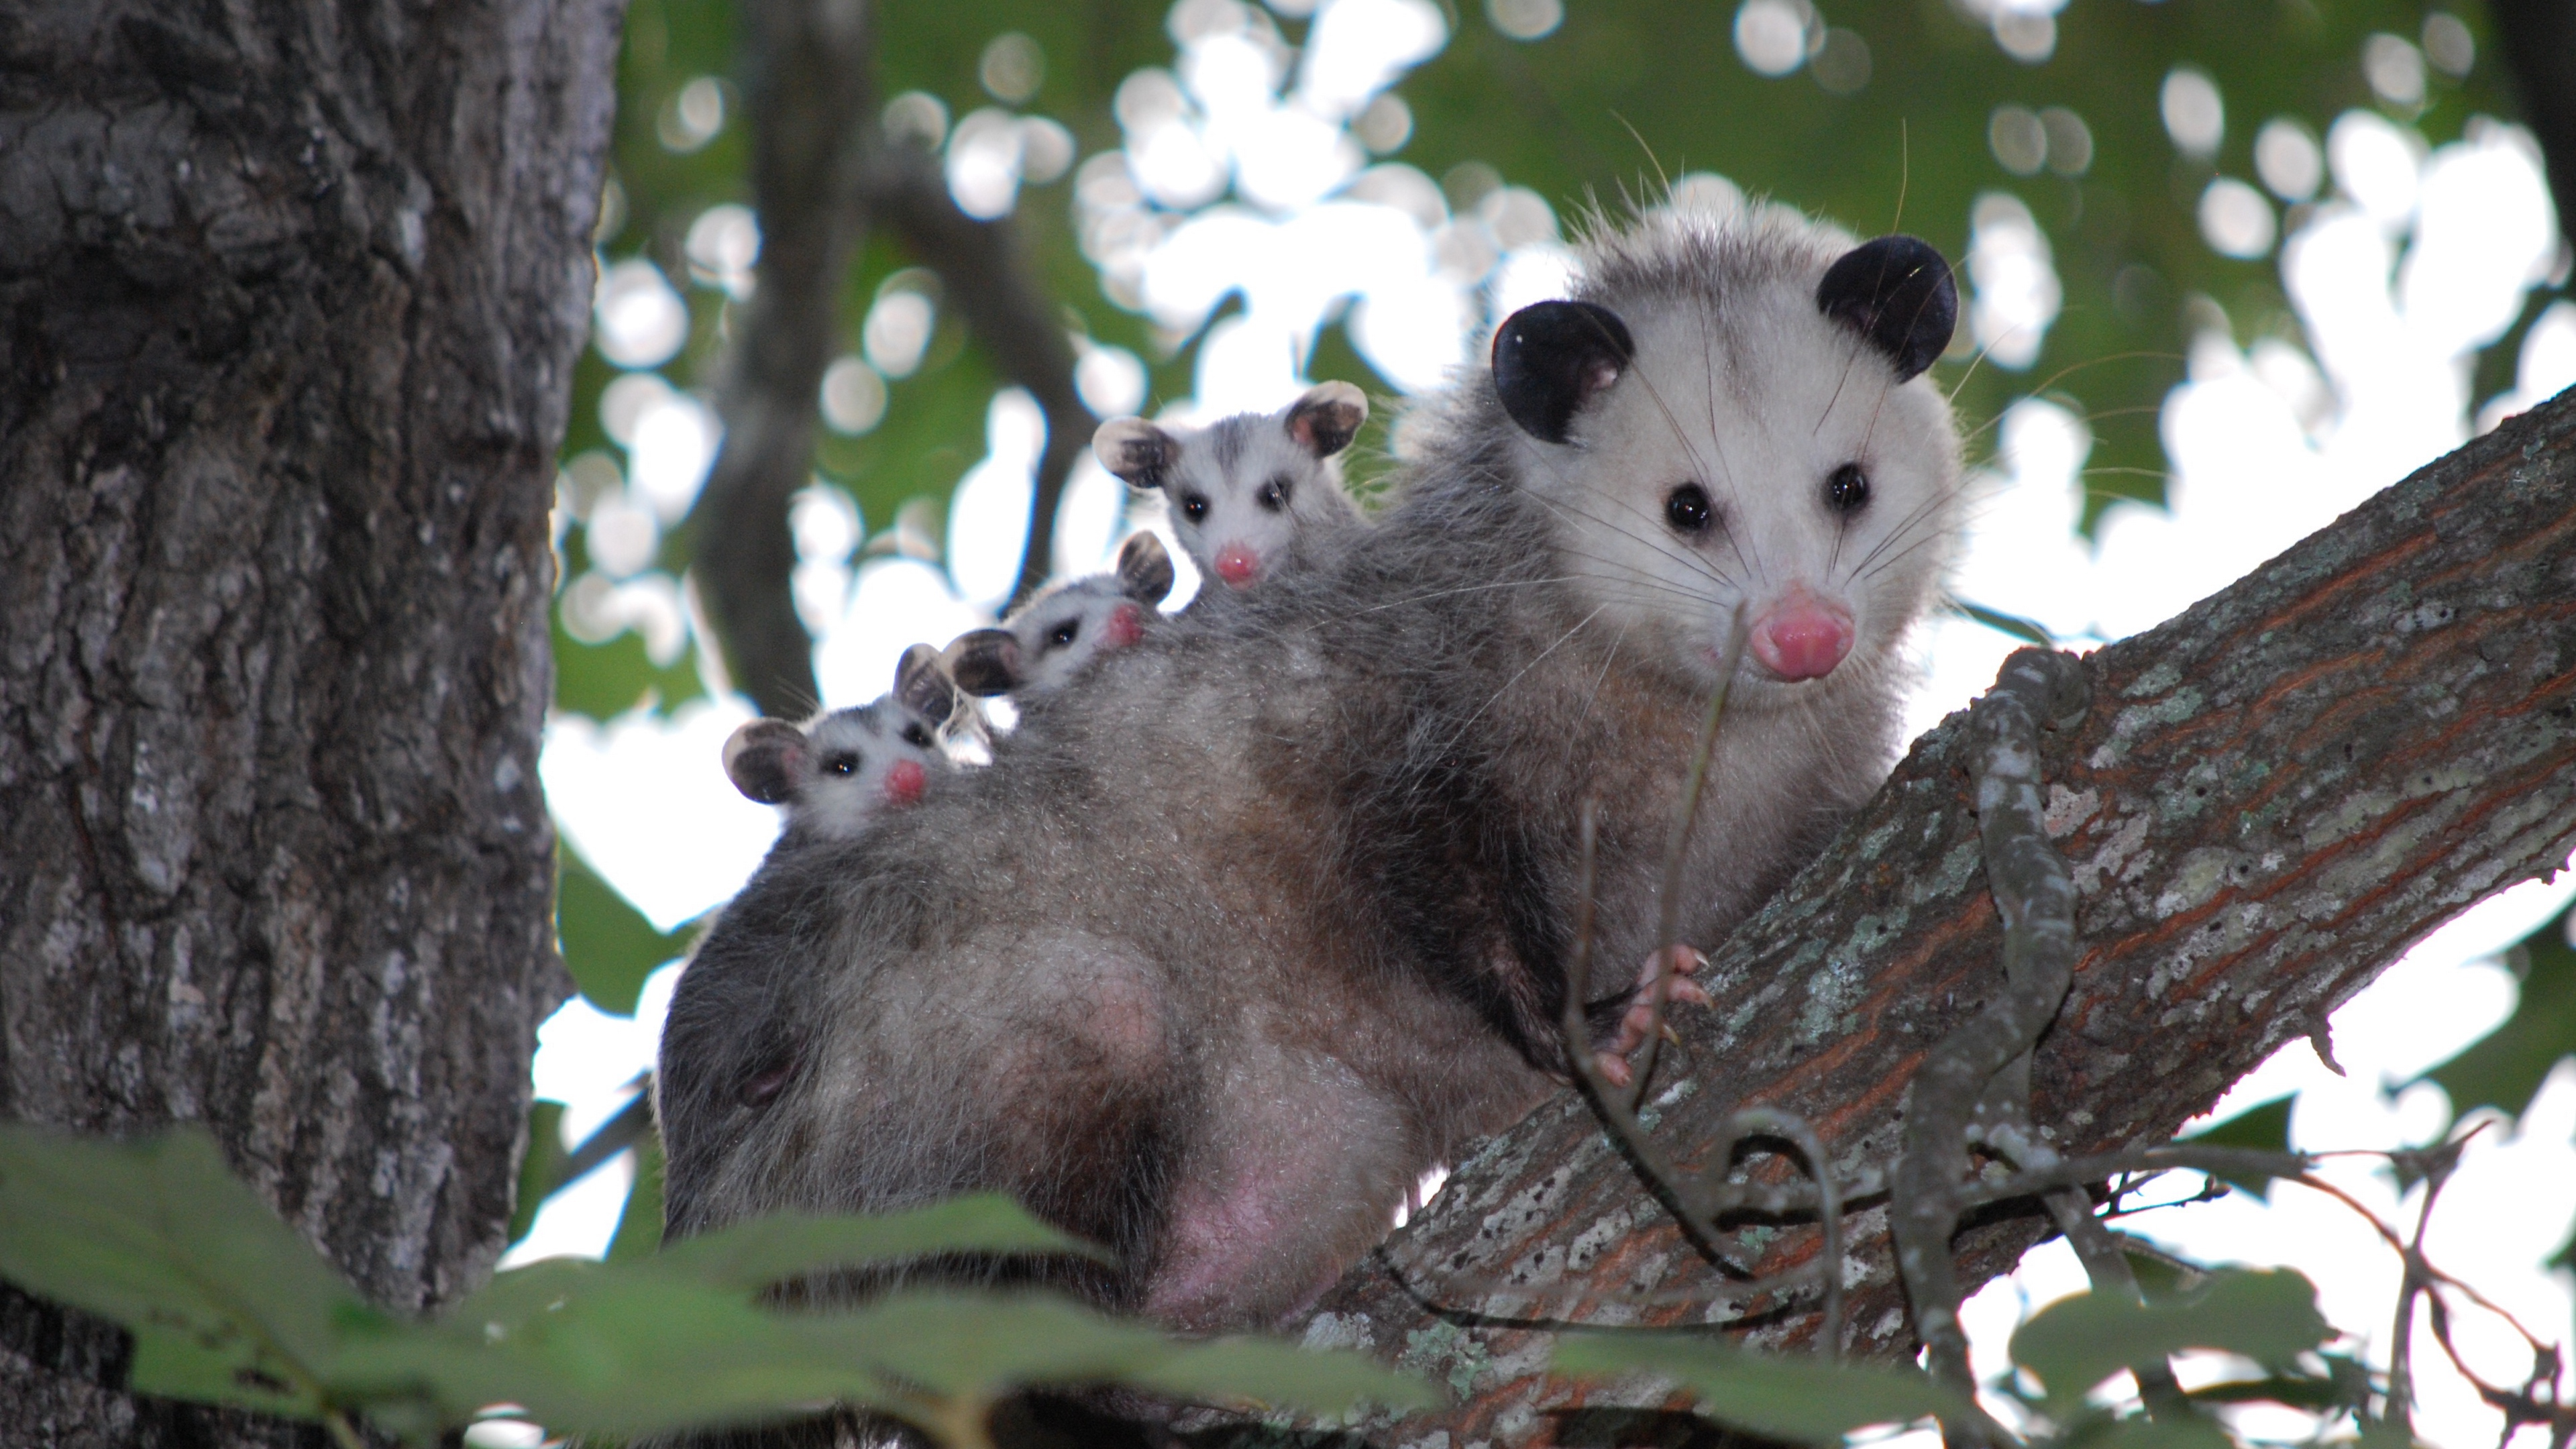 possum cubs tree care family 4k 1542242957 - possum, cubs, tree, care, family 4k - tree, possum, Cubs